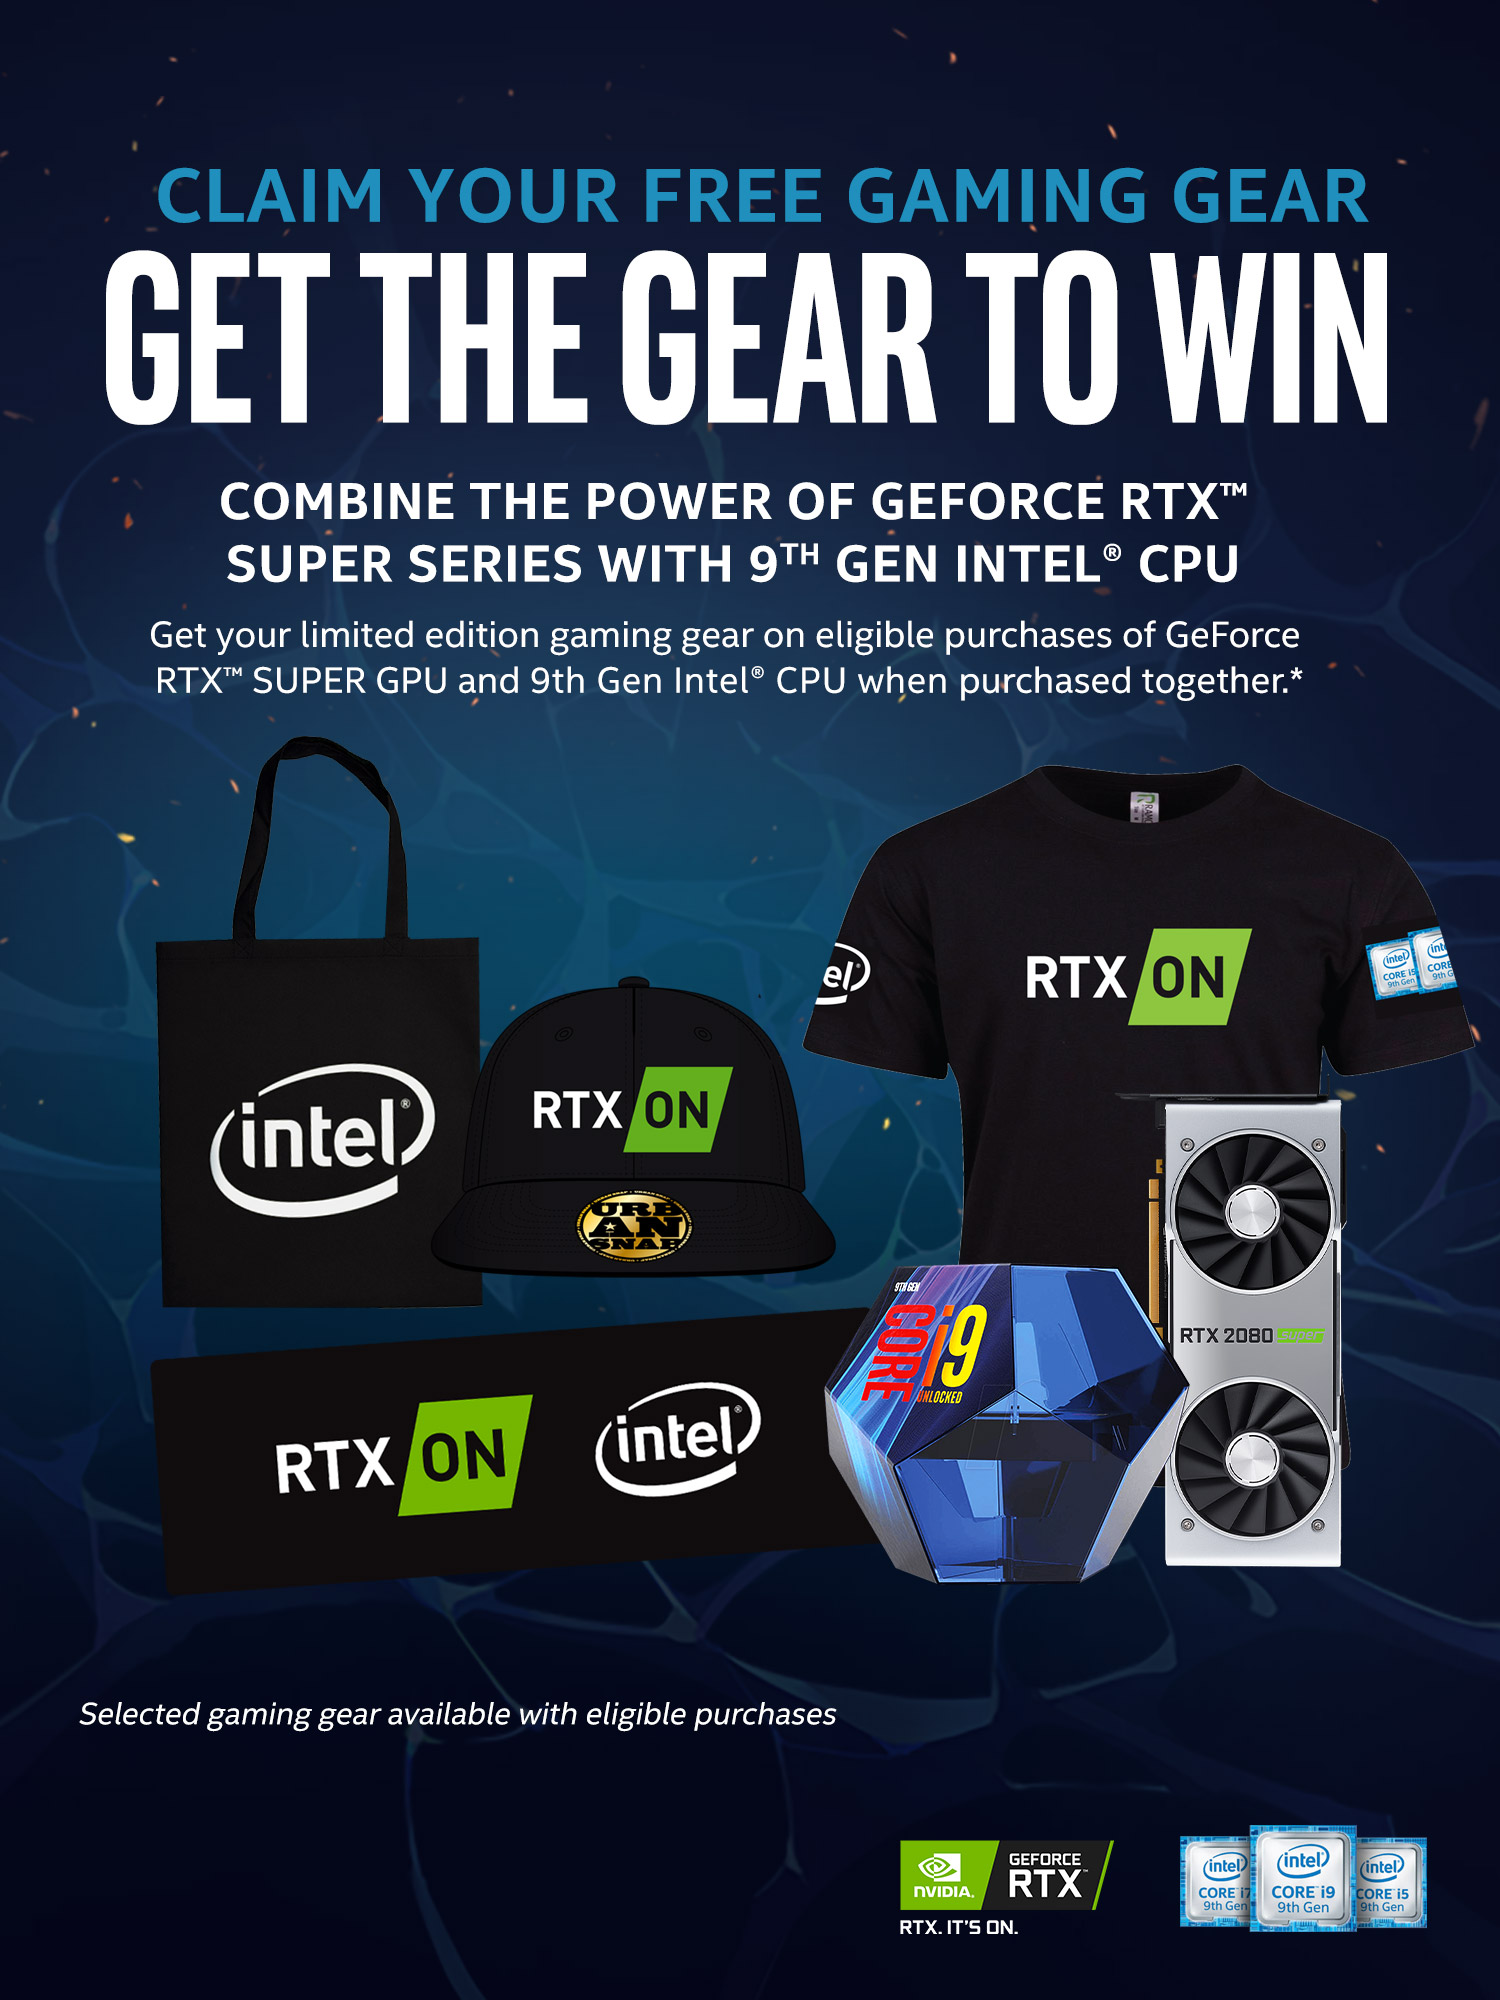 A large marketing image providing additional information about the product Intel i5 & Nvidia RTX 2060 Super Merchandise Promotion - Additional alt info not provided